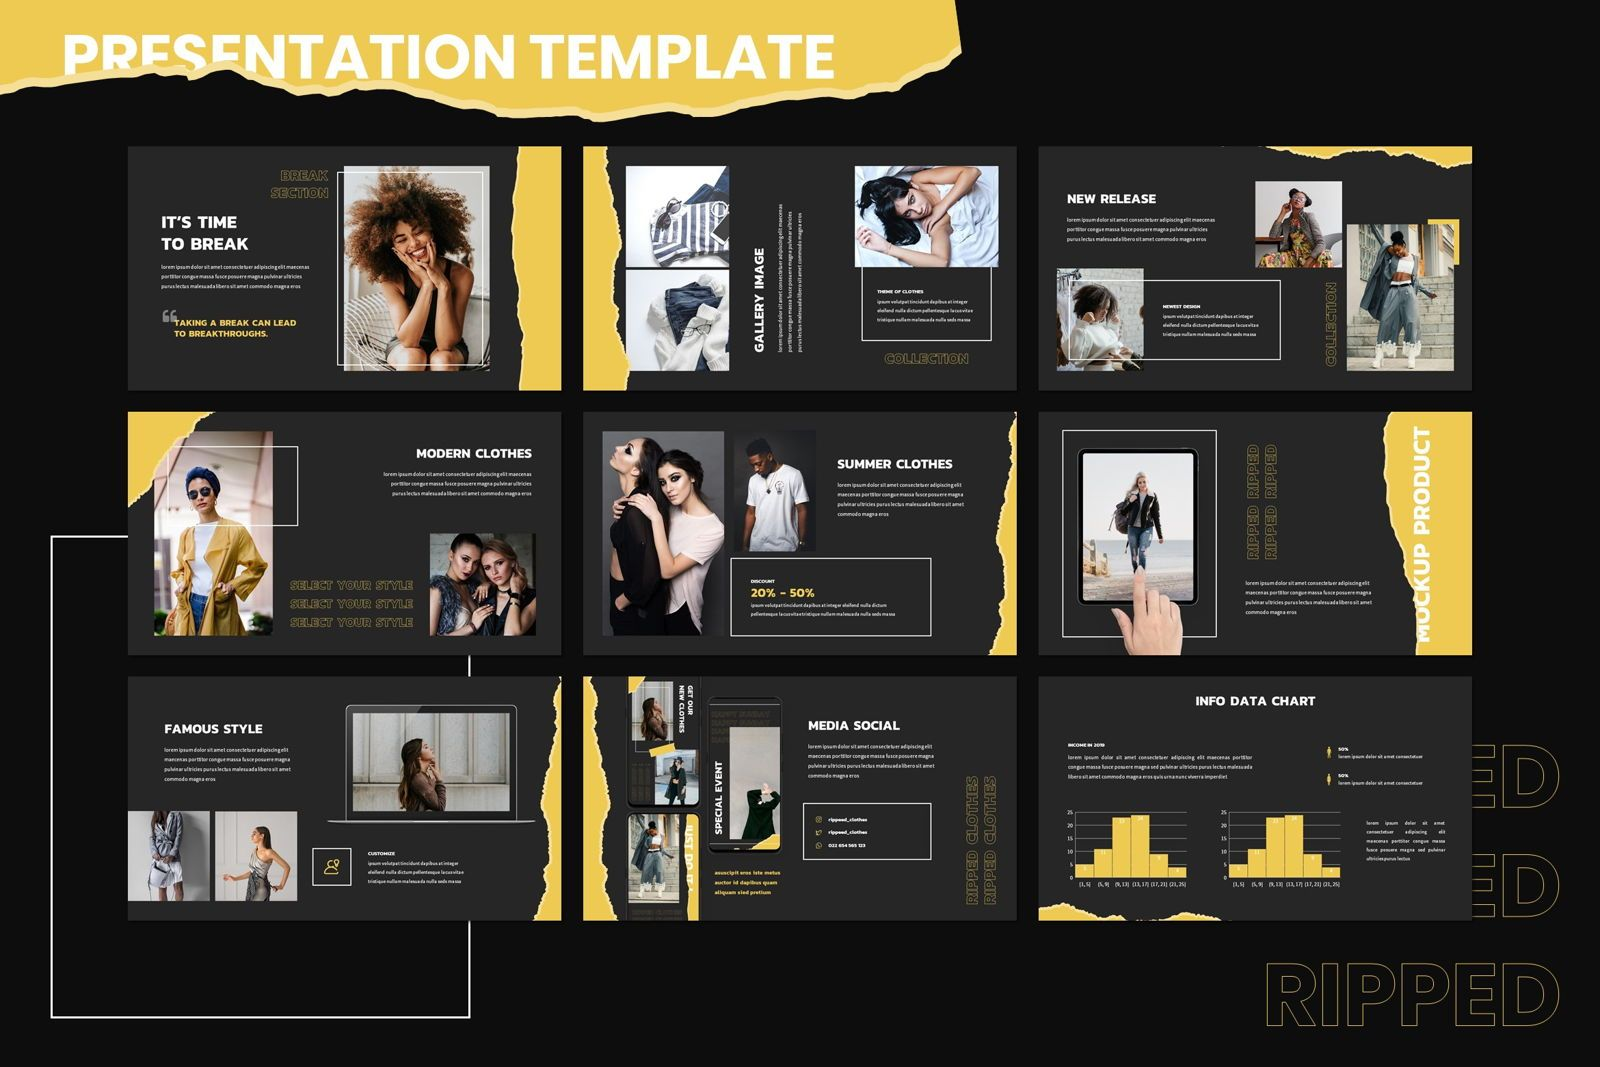 Riped - Powerpoint Template, Slide 4, 07996, Presentation Templates — PoweredTemplate.com